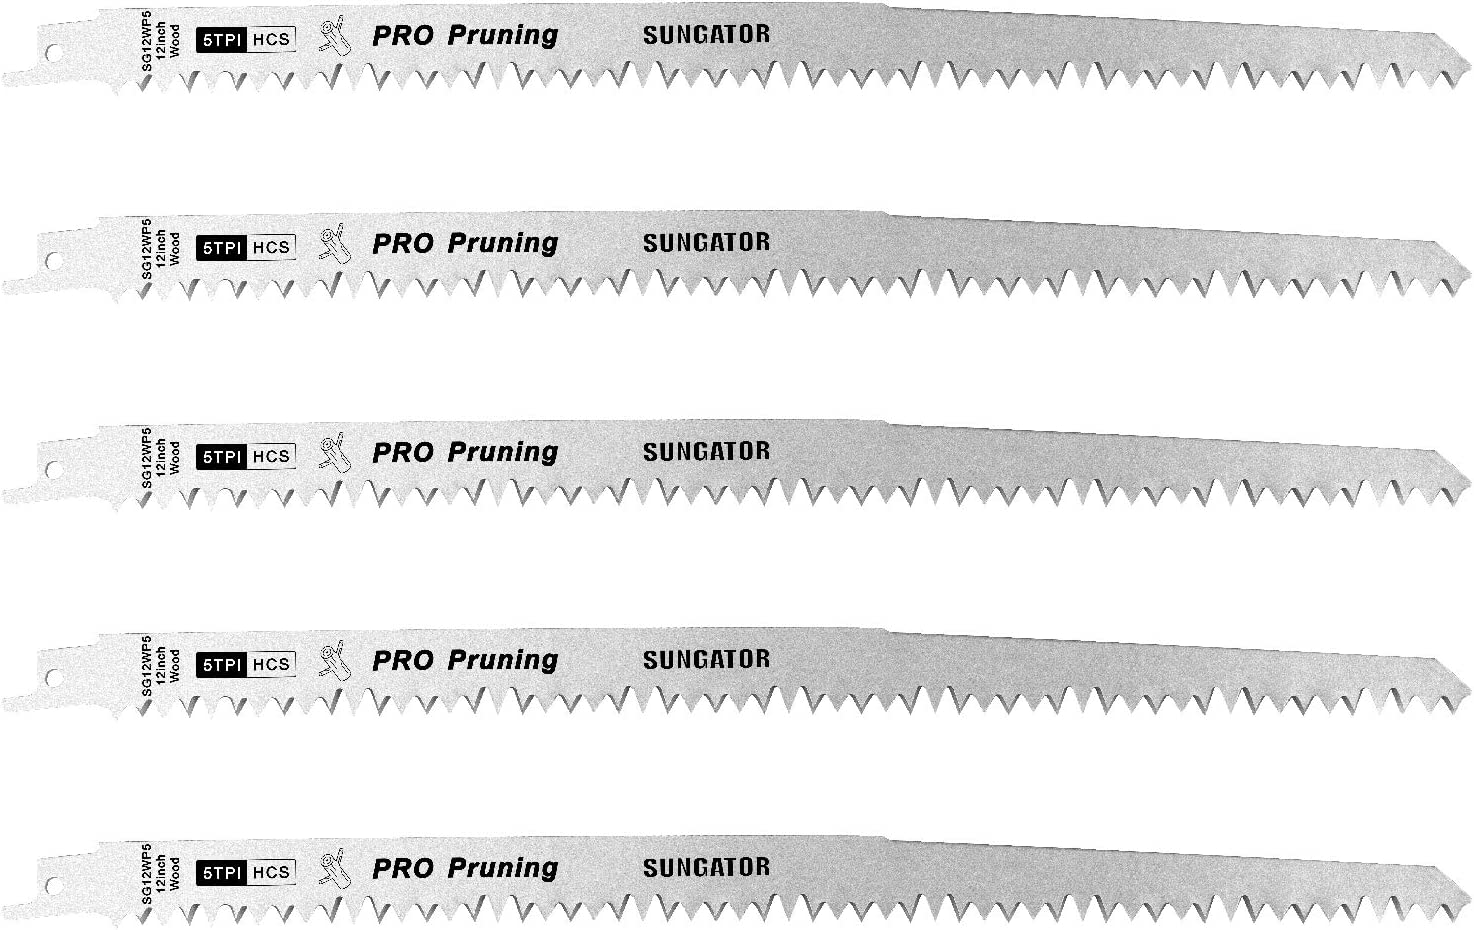 Reciprocating/Sawzall Saw Blade, SUNGATOR 12-Inch Wood Pruning Sawzall Blades, Super Hard HCS Material with 5TPI Improve the Cutting Efficiency (5-Pack)